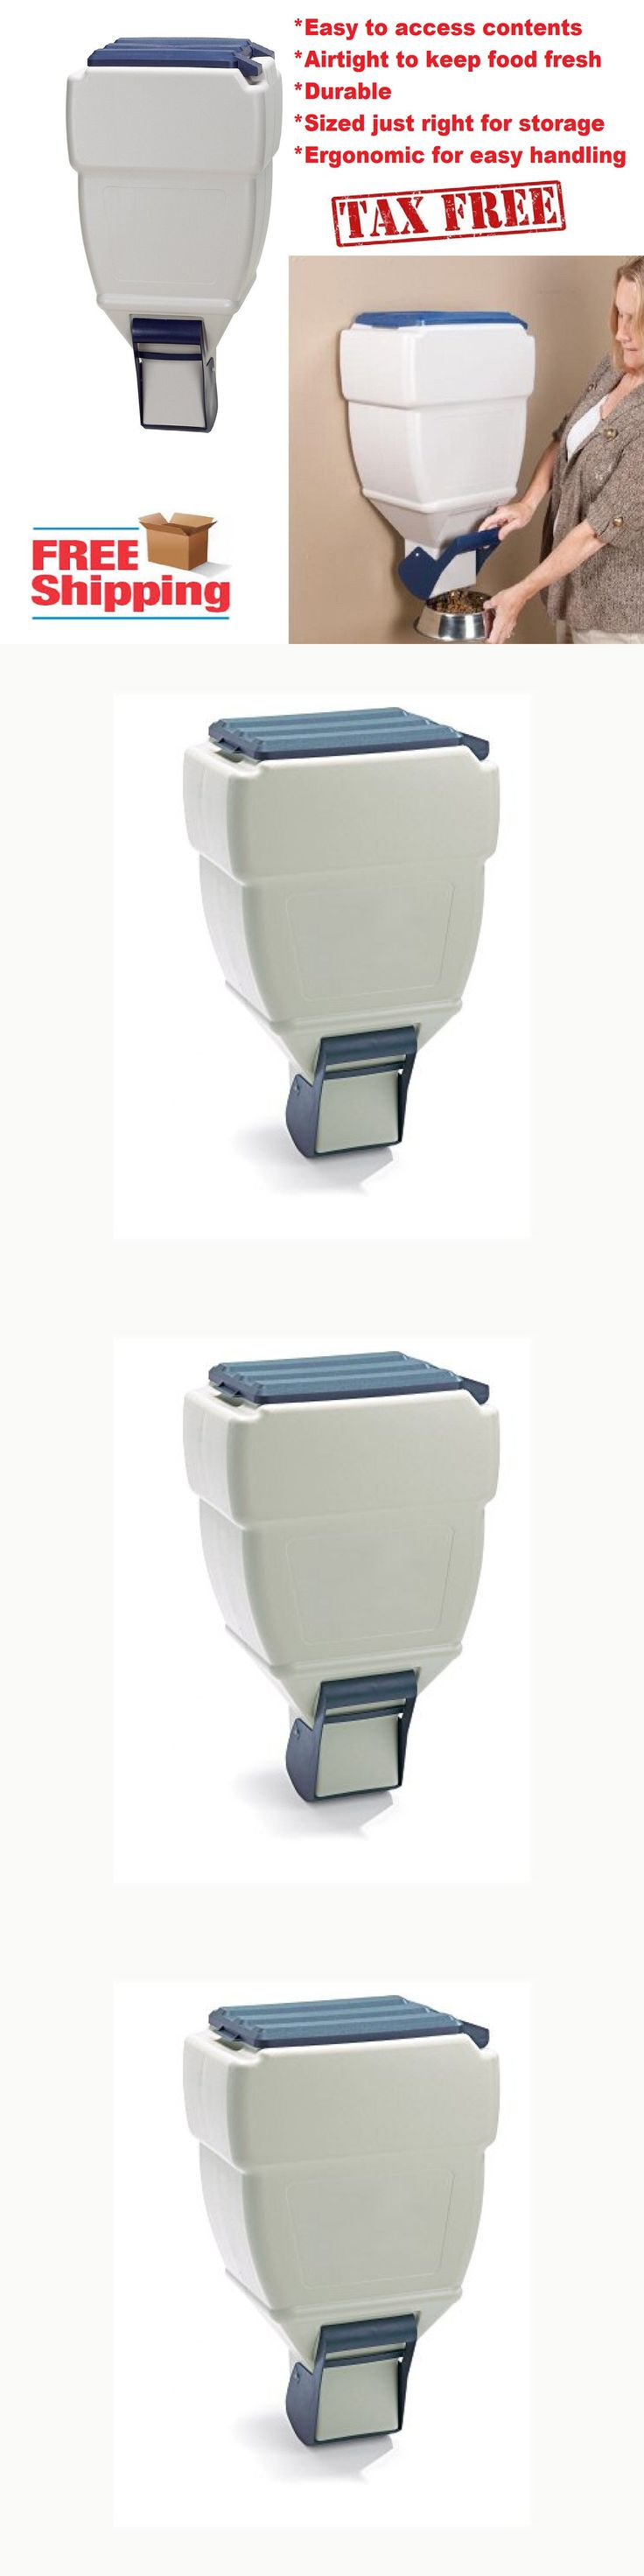 Dishes Feeders and Fountains 177789: Wall Mount Pet Dry Food Dispenser Cat Dog Food Storage Container Holds 40 Pounds -> BUY IT NOW ONLY: $39.26 on eBay!